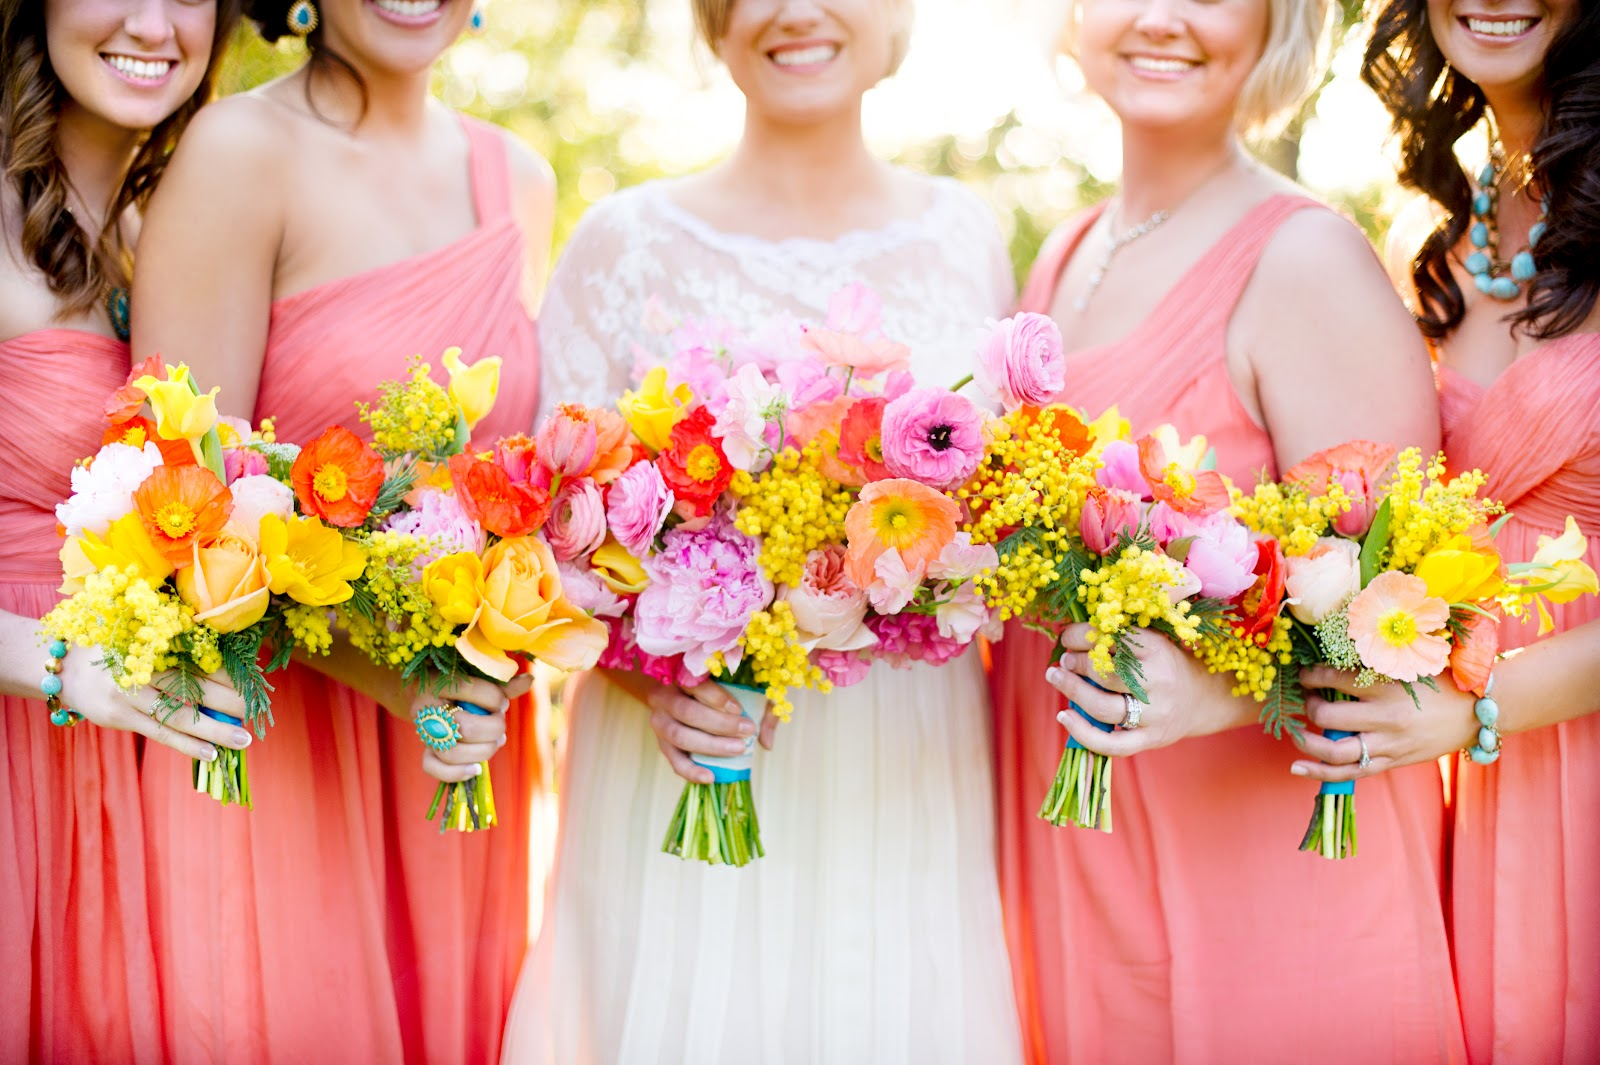 Best Yellow And Pink Wedding Ideas - Styles & Ideas 2018 - sperr.us